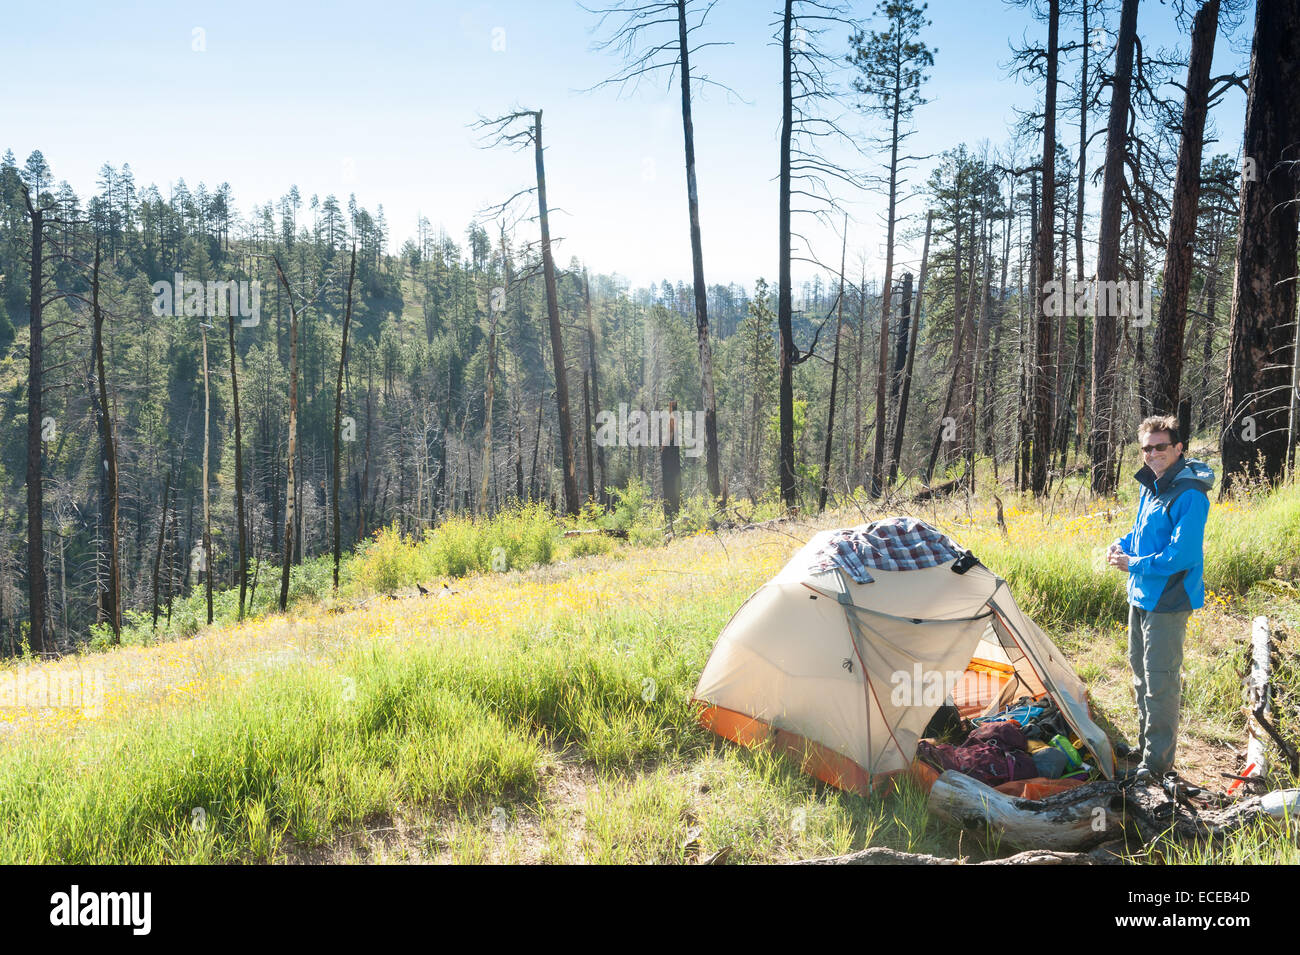 Man camping on Arizona trail, Grand Canyon, Arizona, America, USA - Stock Image